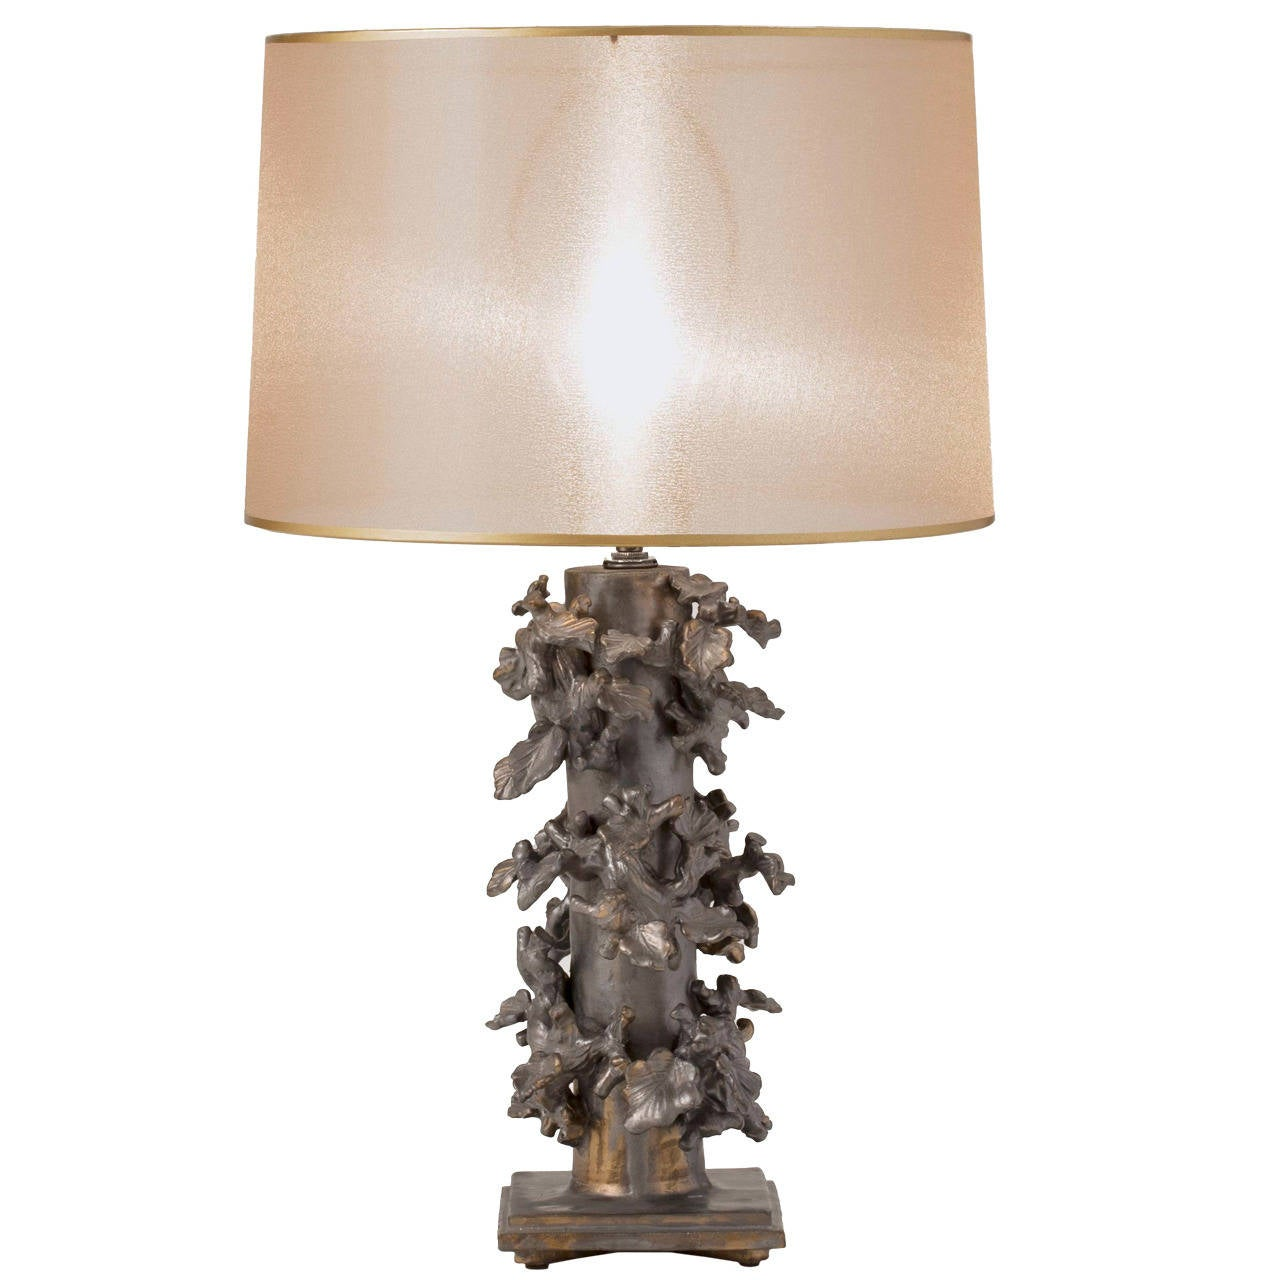 Unique Glazed Stoneware Table Lamp By Matthew Solomon At